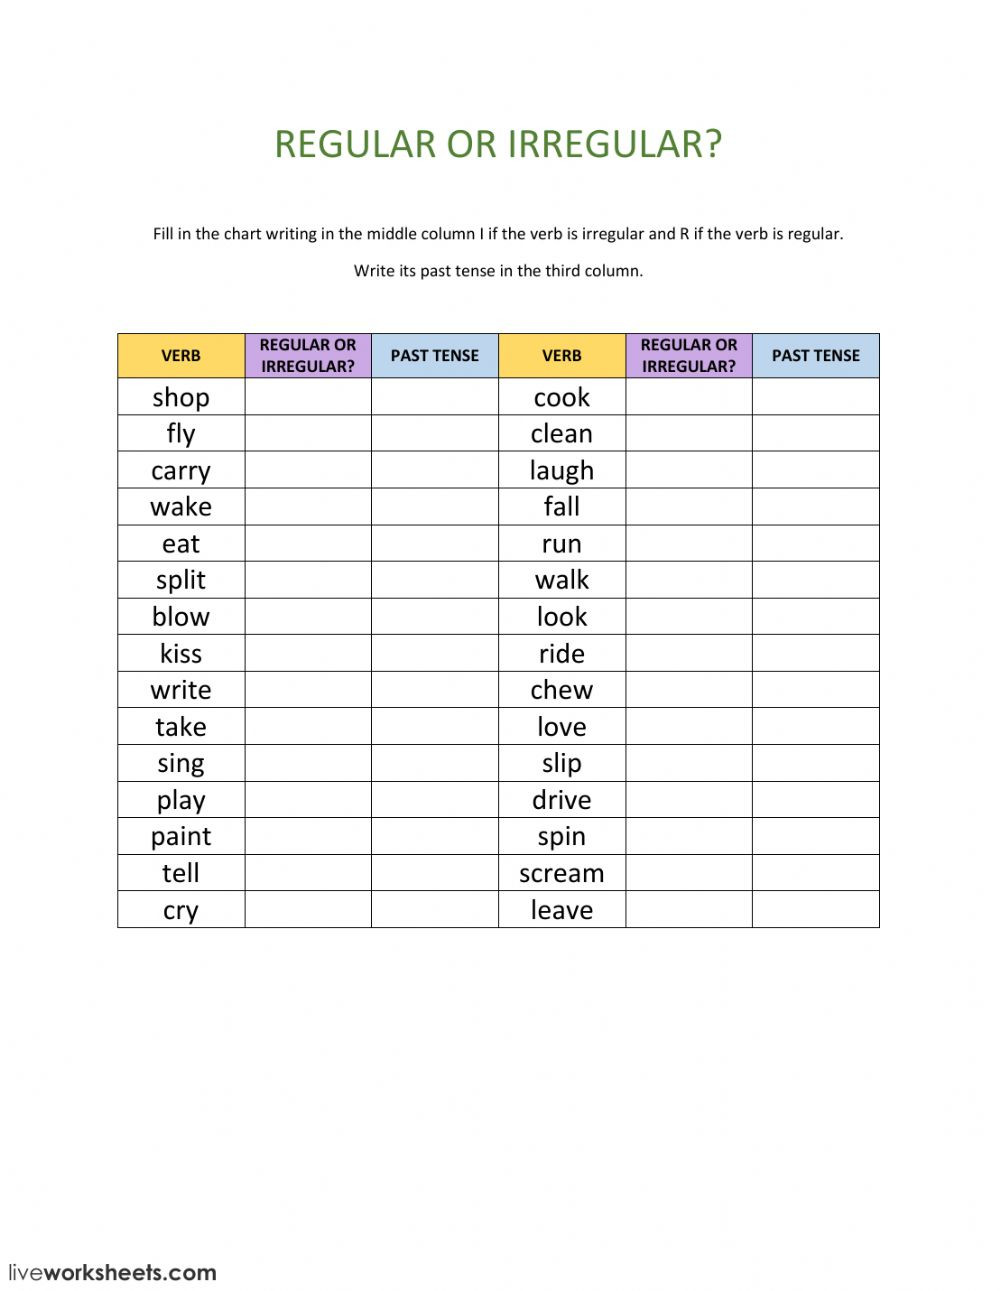 Irregular Verbs Worksheet 2nd Grade Regular or Irregular Verbs Interactive Worksheet